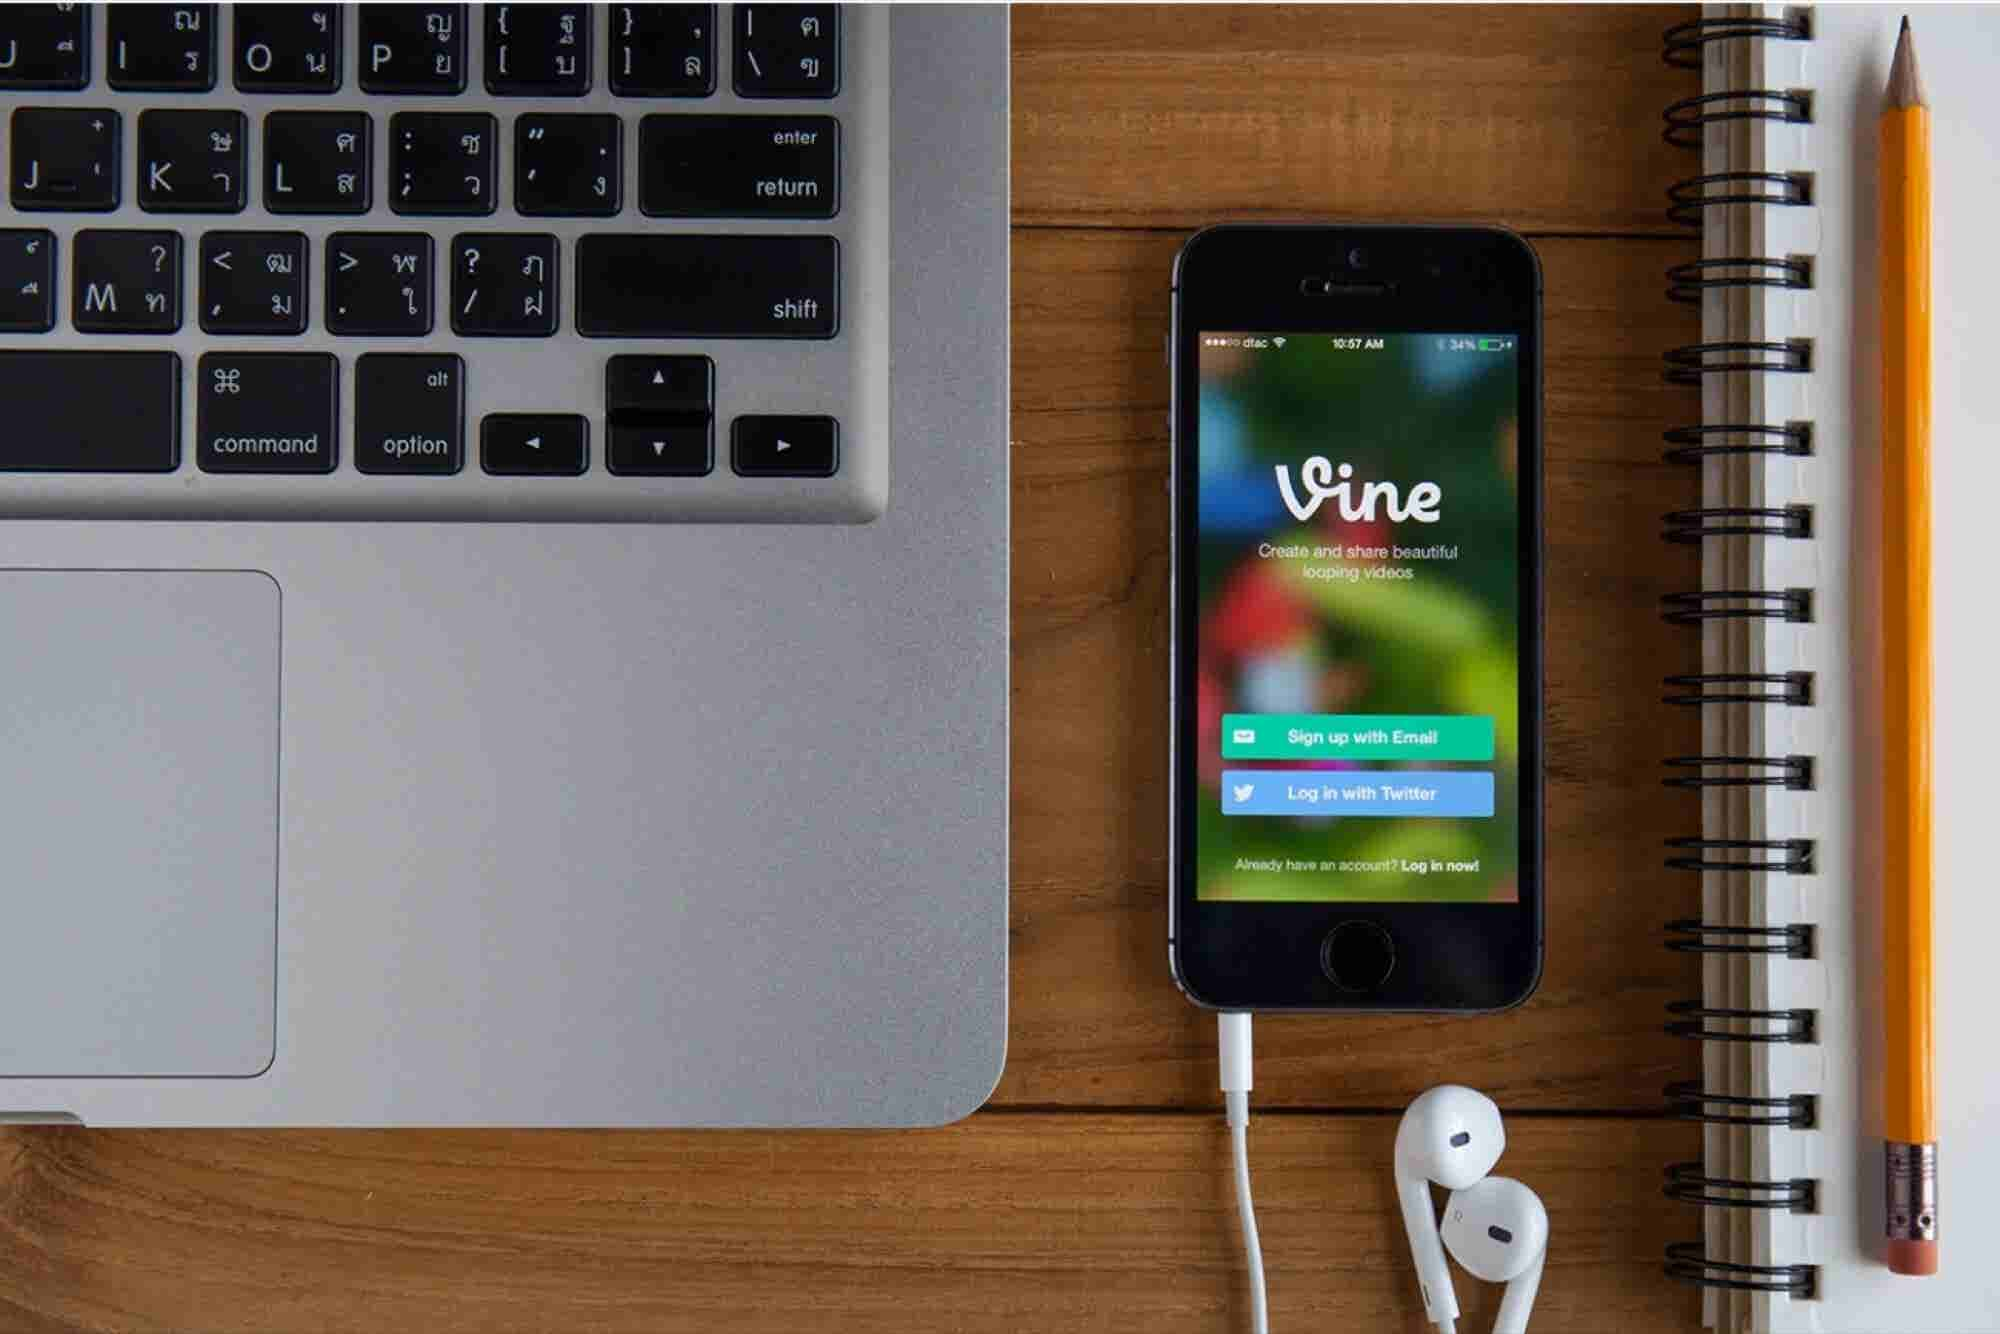 The Ghost of Vine Will Haunt Social Media Marketers Forever